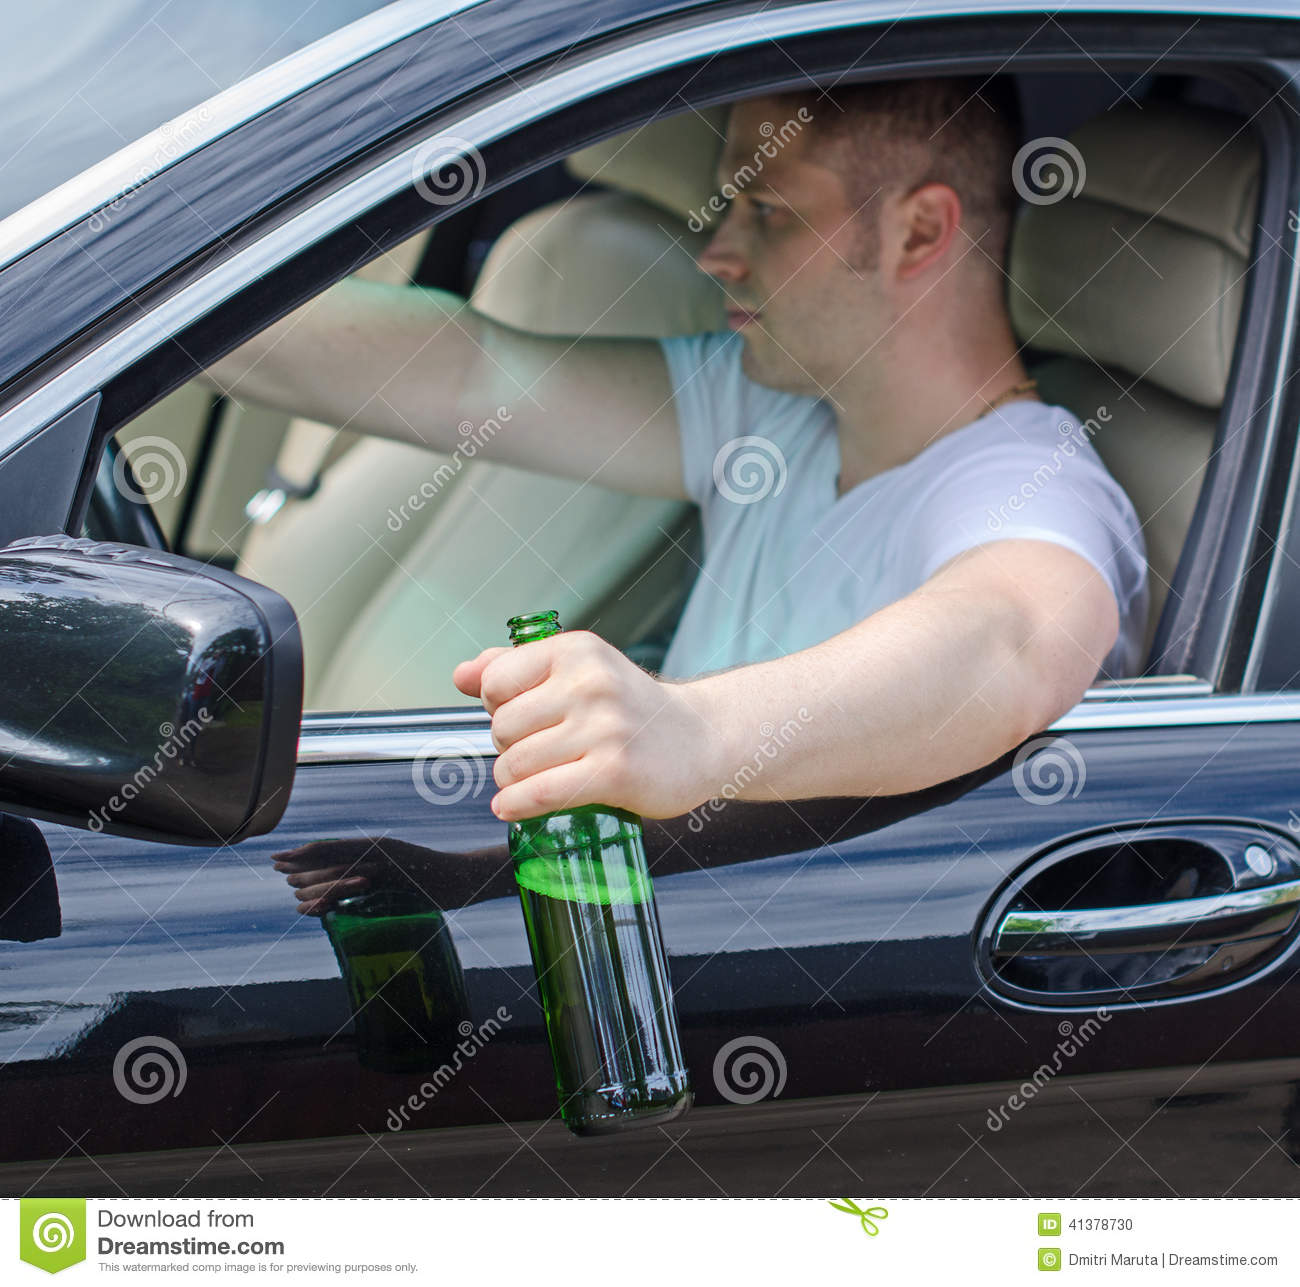 driving under the influence of alcohol Driving under influence of alcohol alcohol is a major cause of accidents and accidental injury on the road the presence of alcohol in the body has been shown to increase the severity of injuries from accidents.